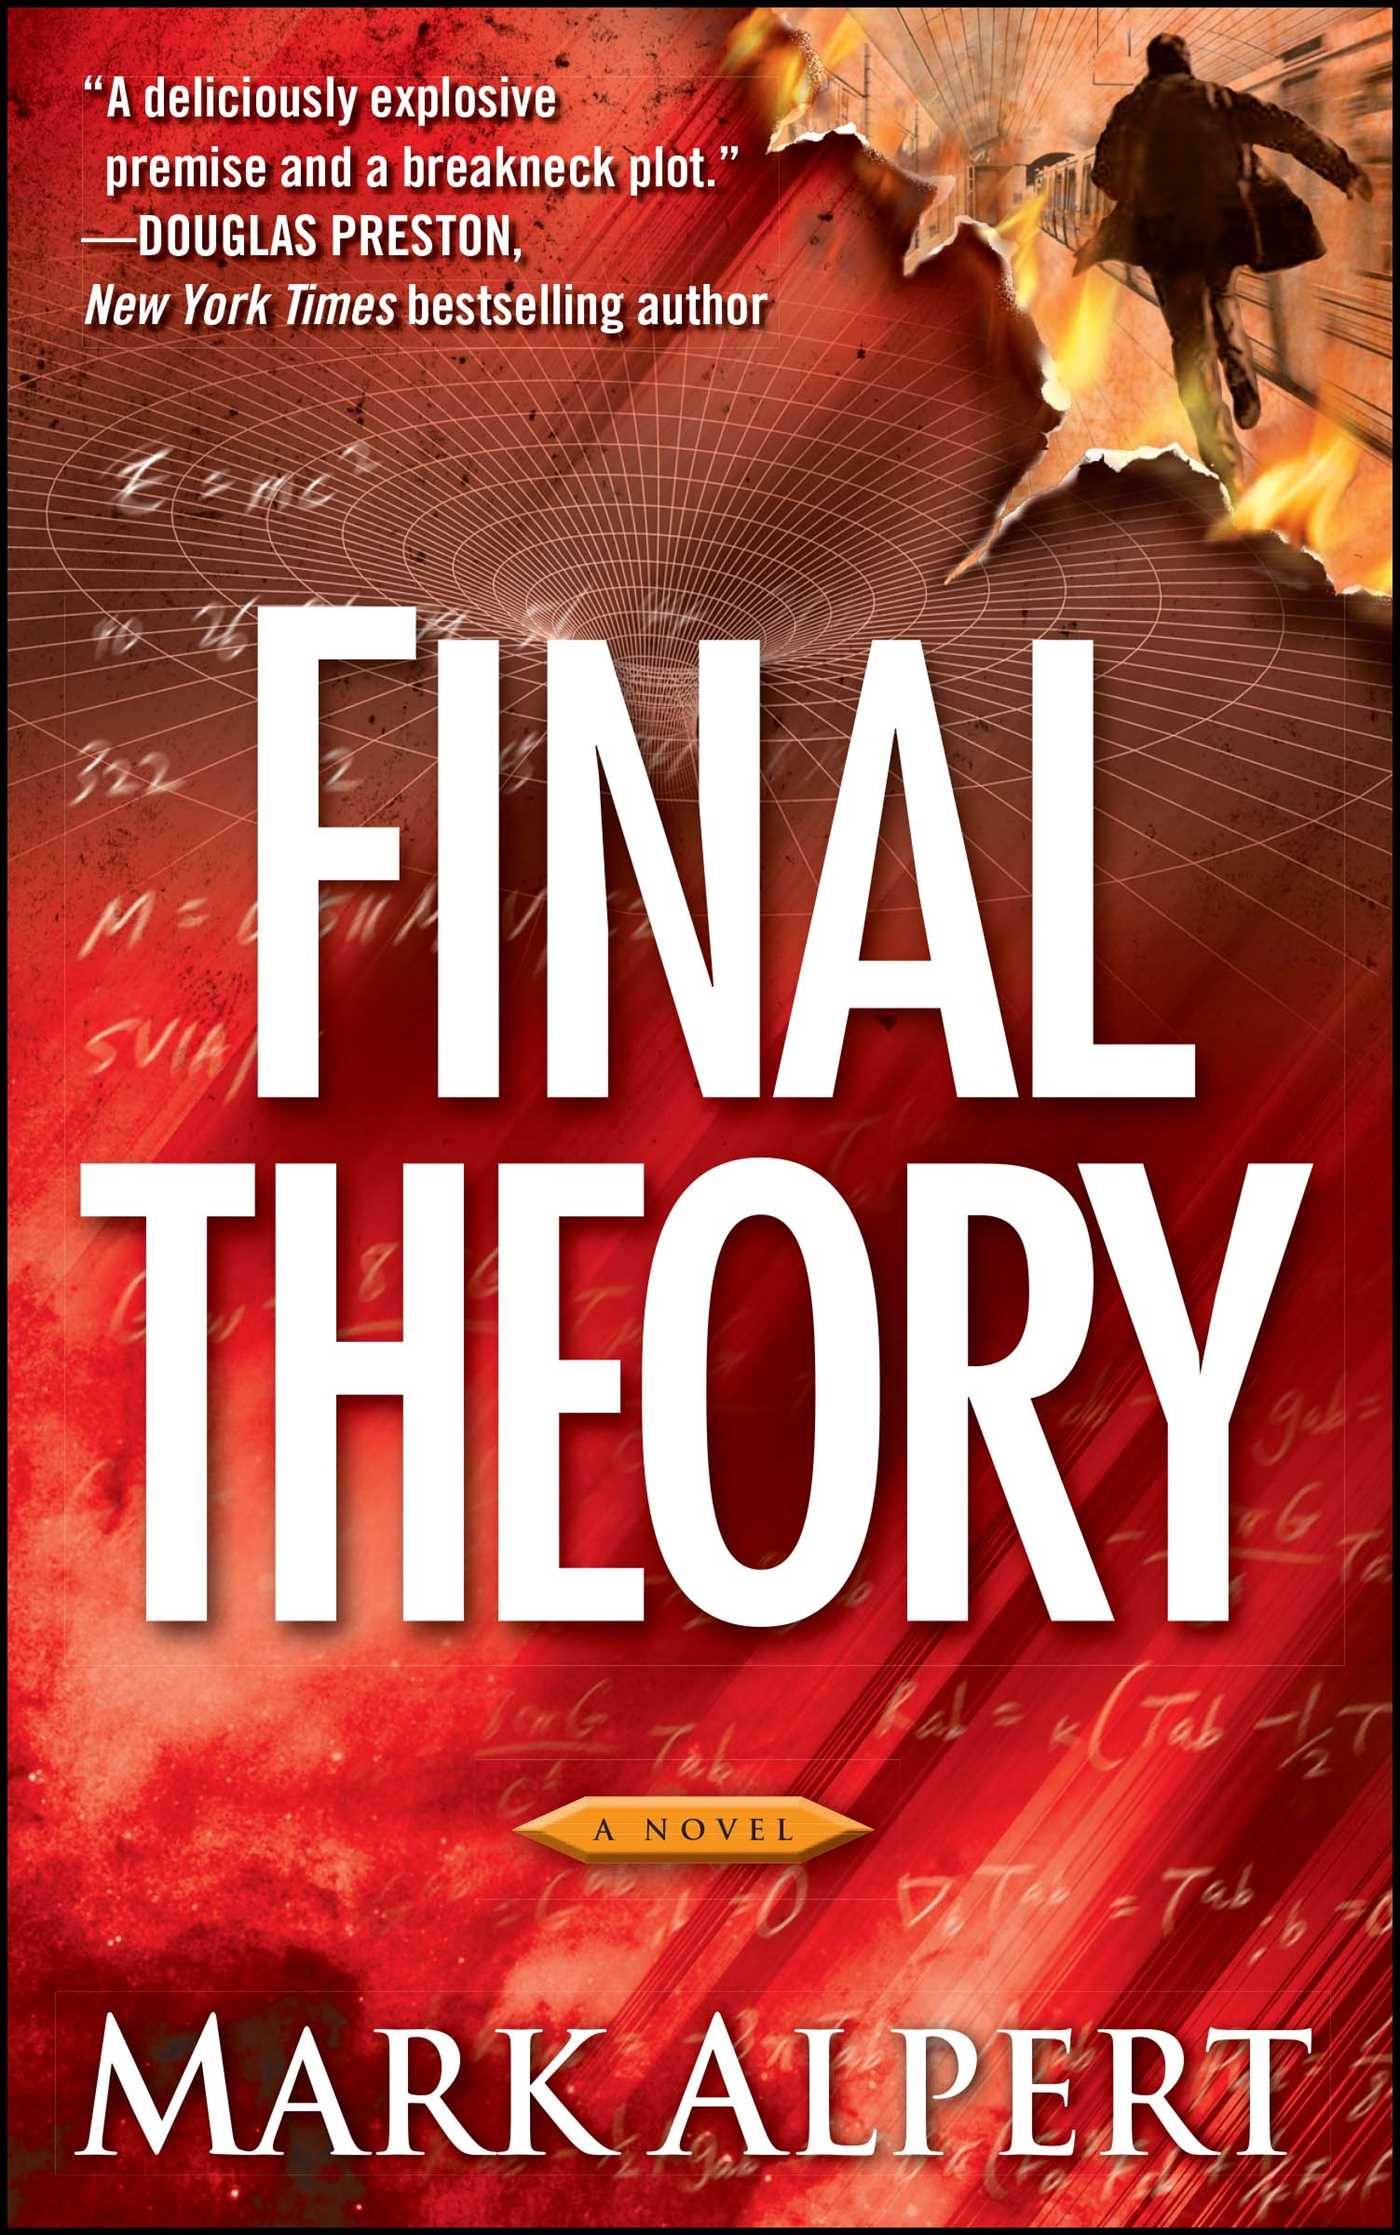 Final-theory-9781416573098_hr